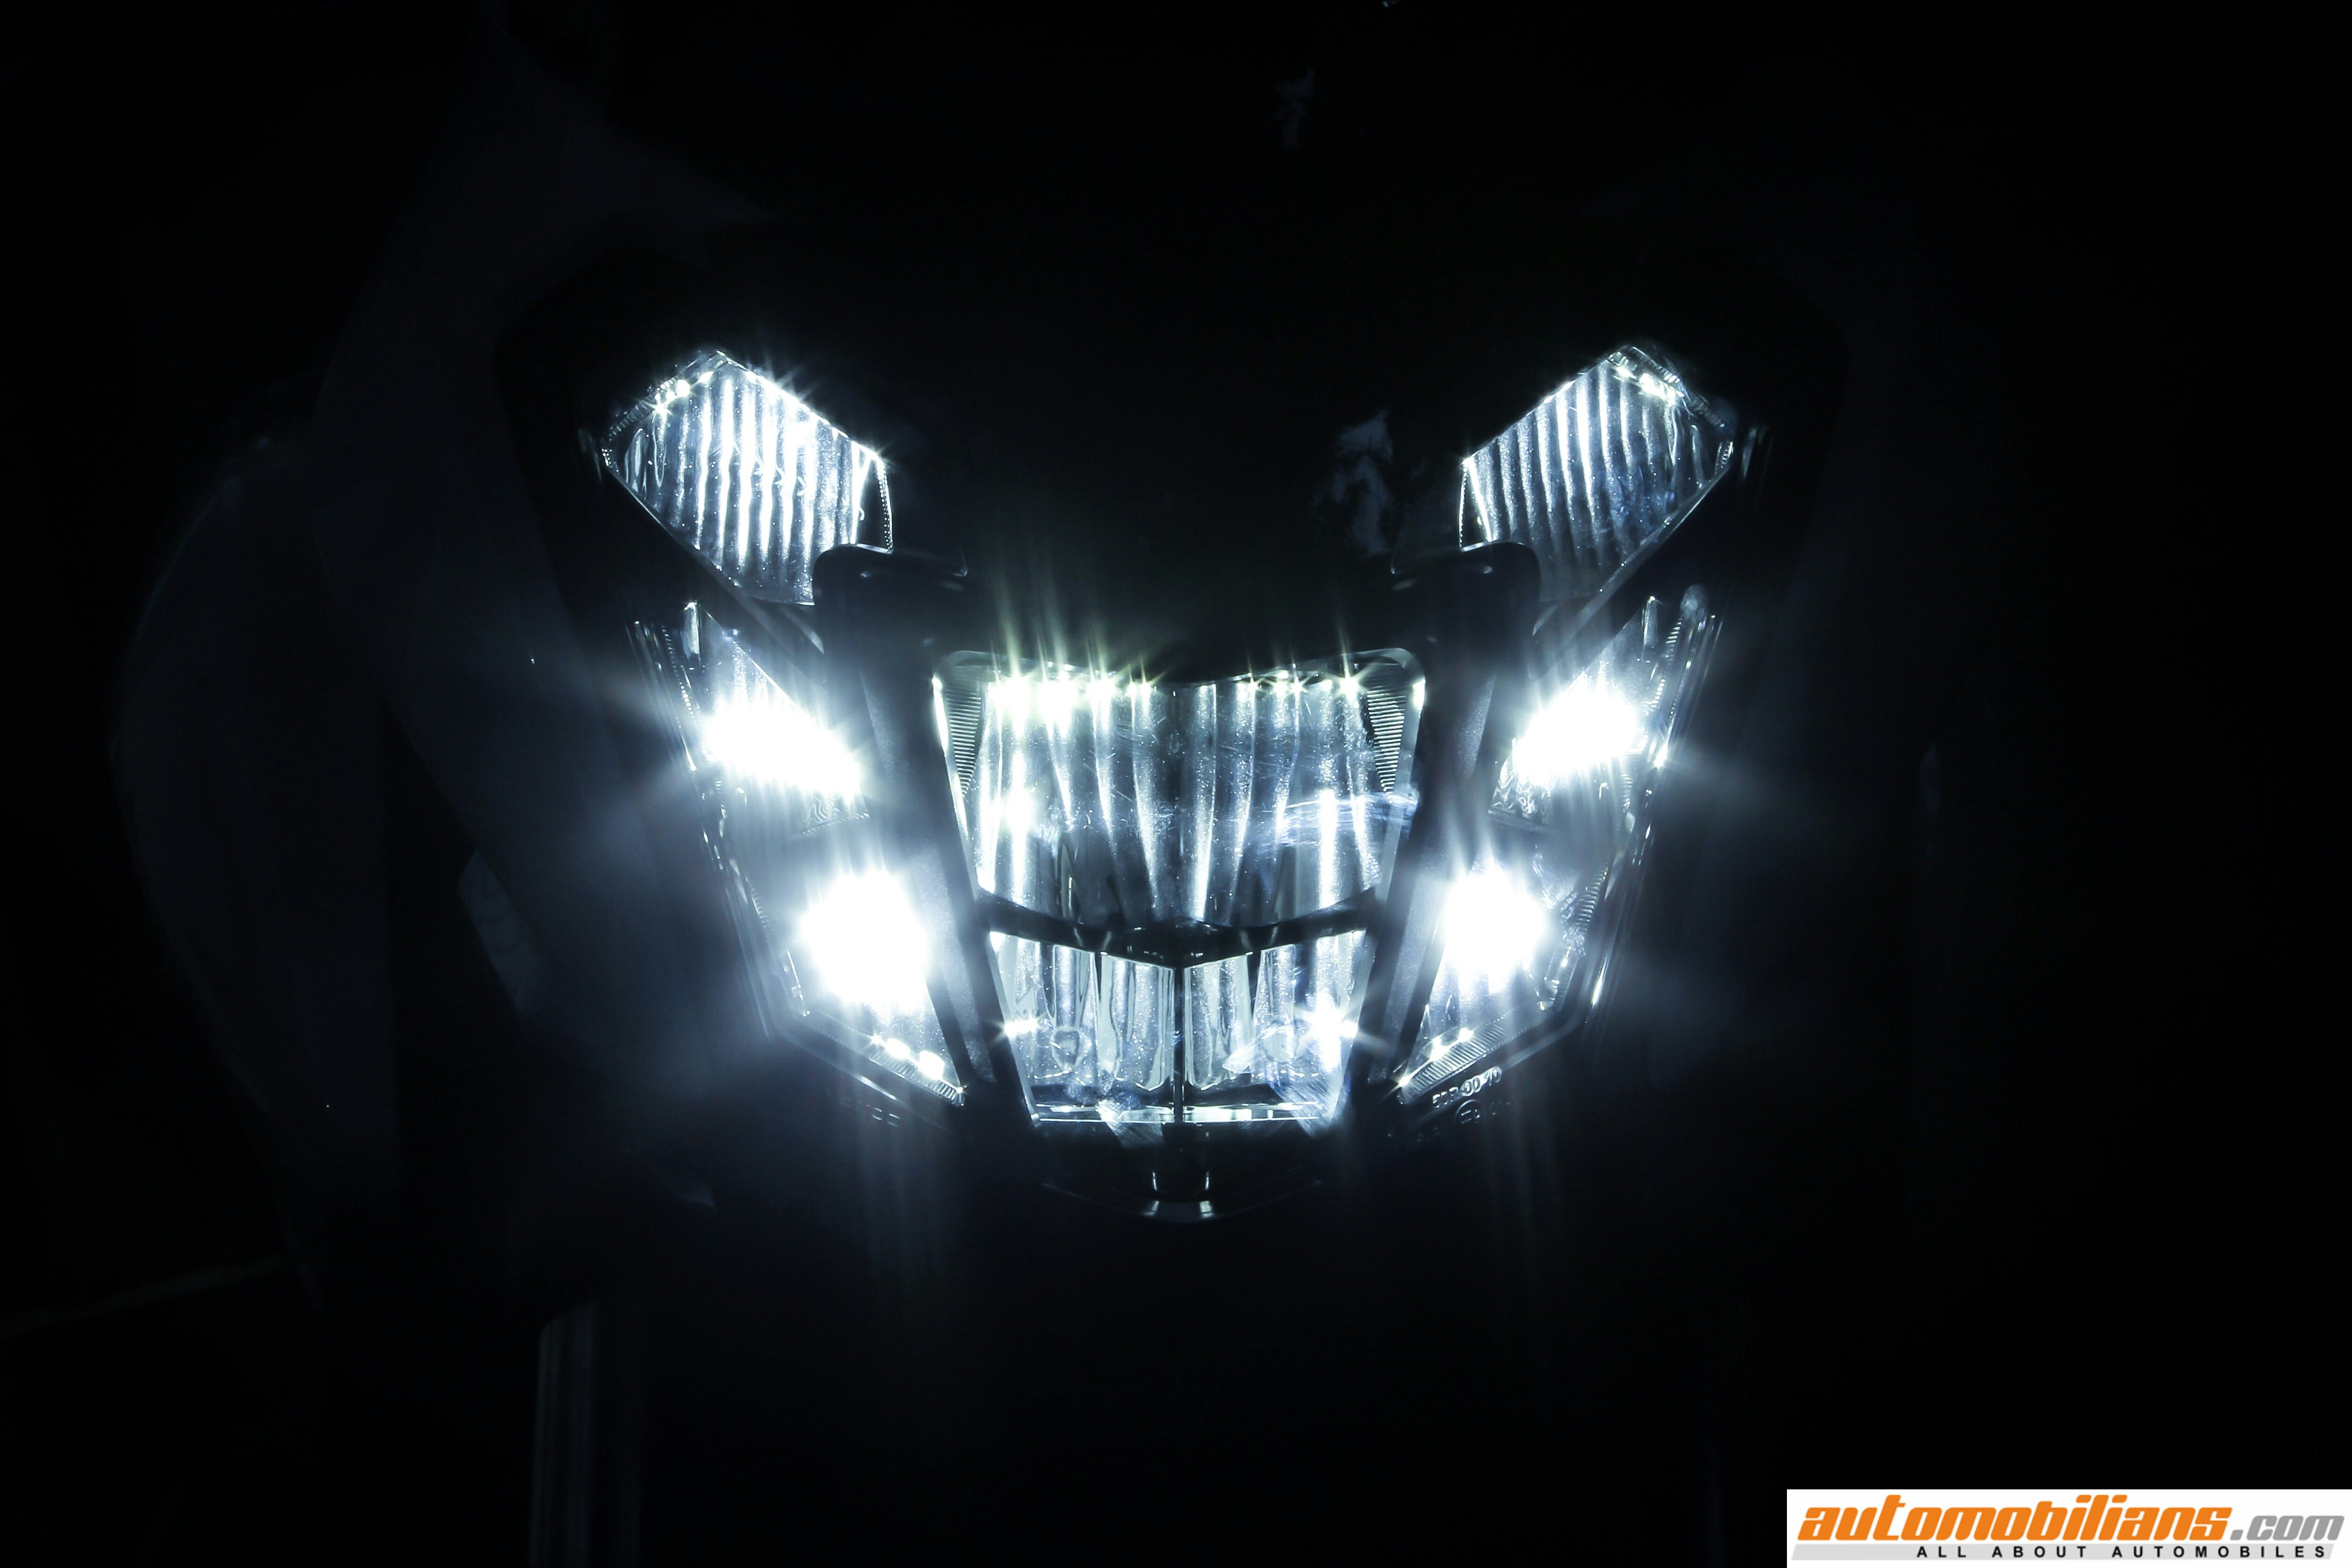 Zel Harleymc Inchheadlightassy additionally D Grill Mounted Fog Lights Change Mustang Meadows further  likewise Image also Halogen Motorcycle Headlight Crystal Amber Led Halo Turn Signal Light Bulb X. on motorcycle led headlights lights